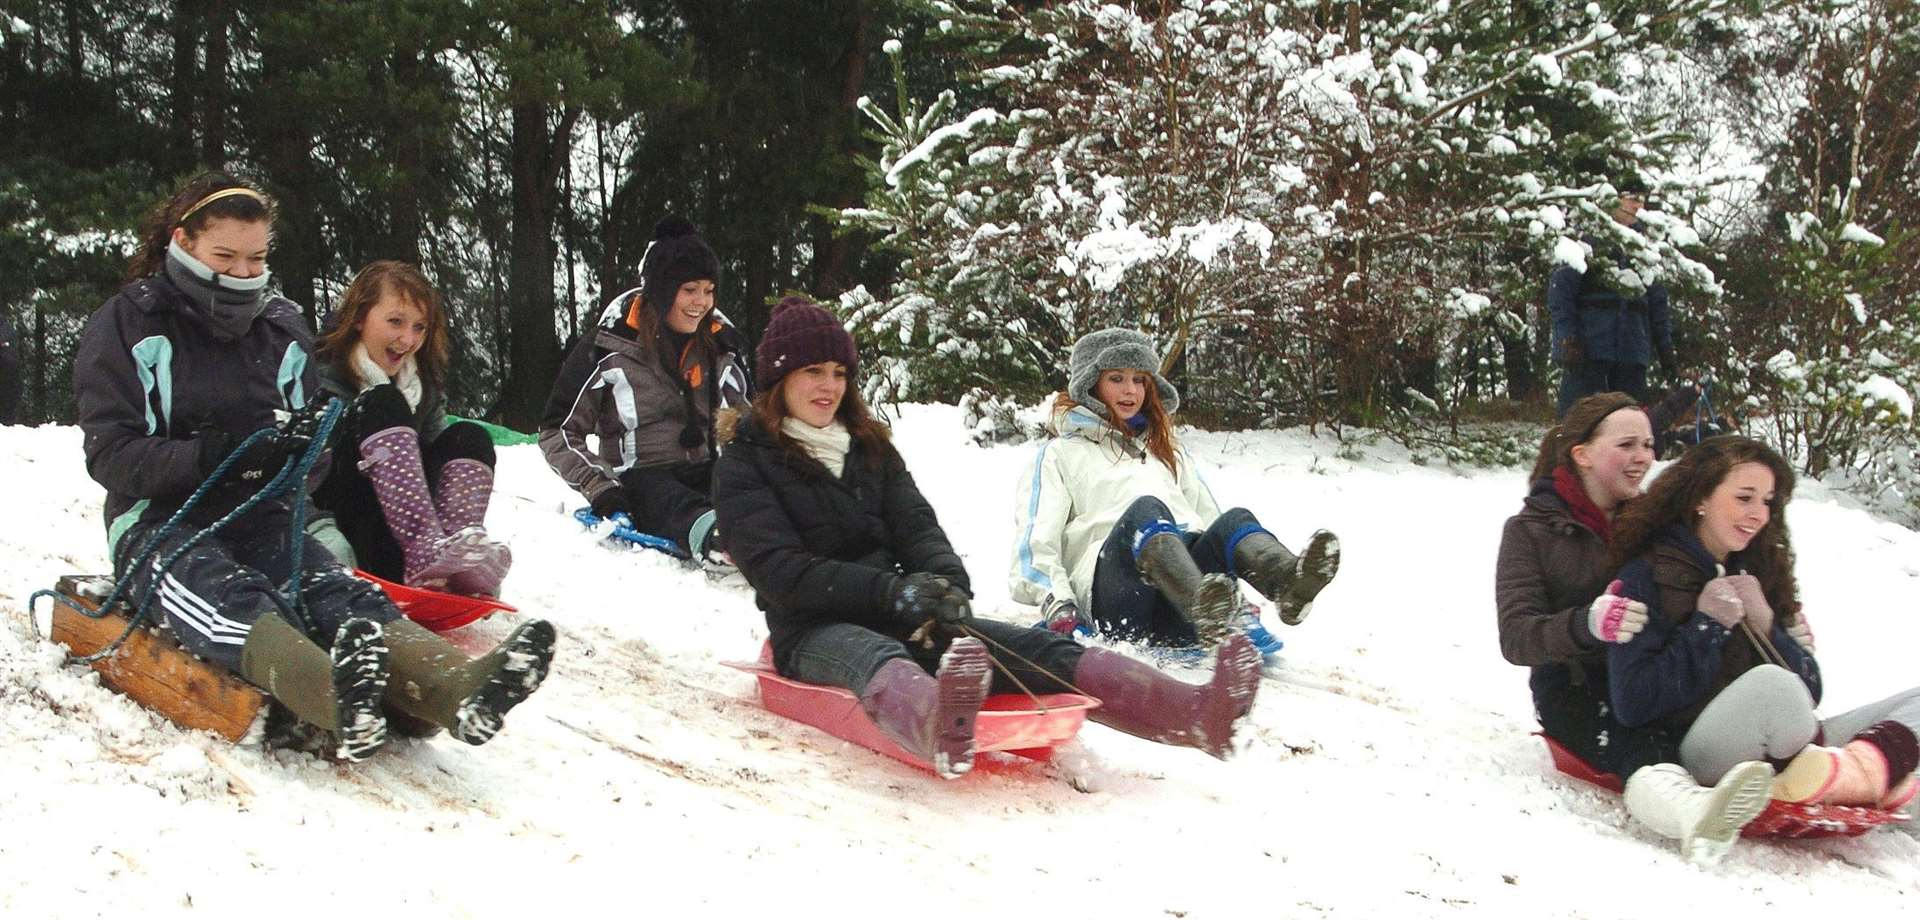 A fun scene after heavy snow on a previous occasion at Wootton Sand Pits.